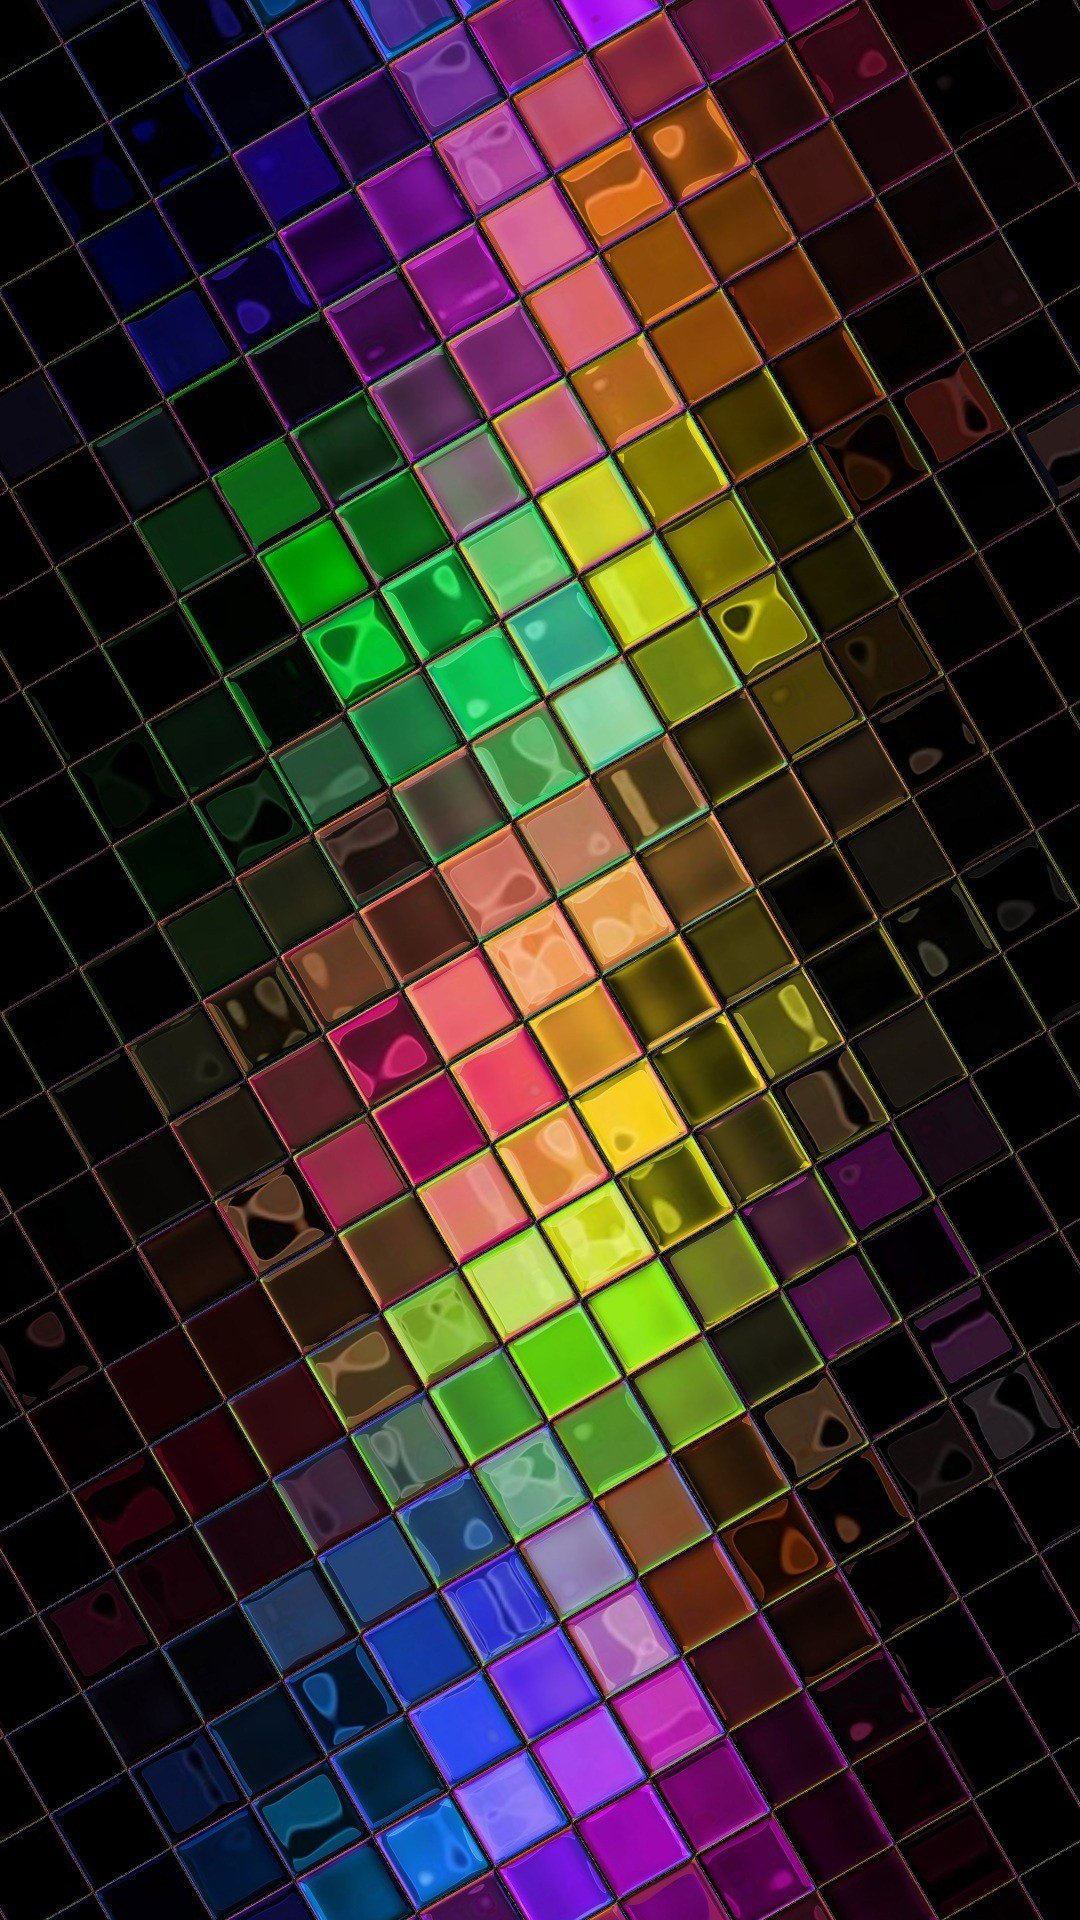 squares   Full HD wallpapers for iPhone 6 Plus 1080x1920